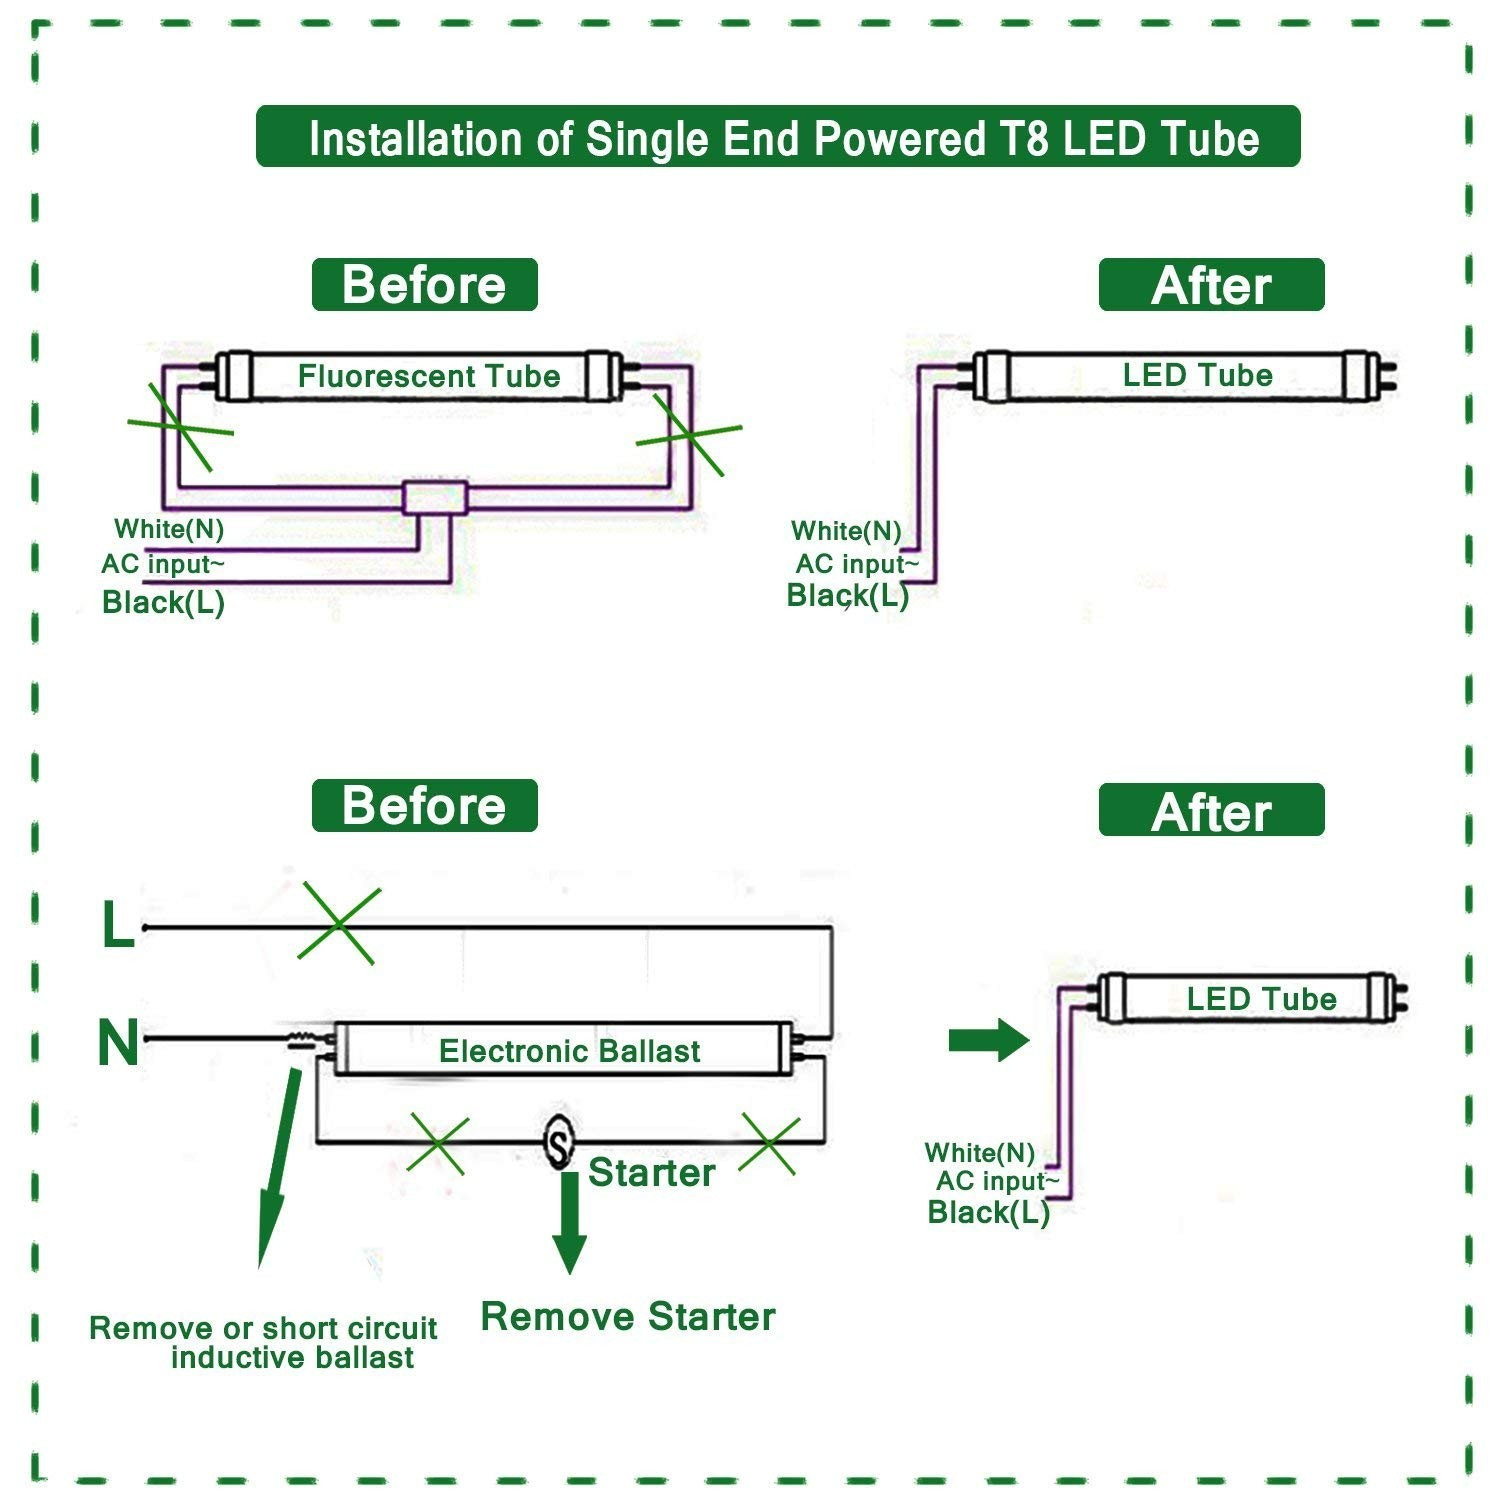 wiring diagram for led tube lights Collection-Wiring Diagram for Fluorescent Light Fresh Wiring Diagram for Led Tubes Refrence Wiring Diagram Led Tube 15-k